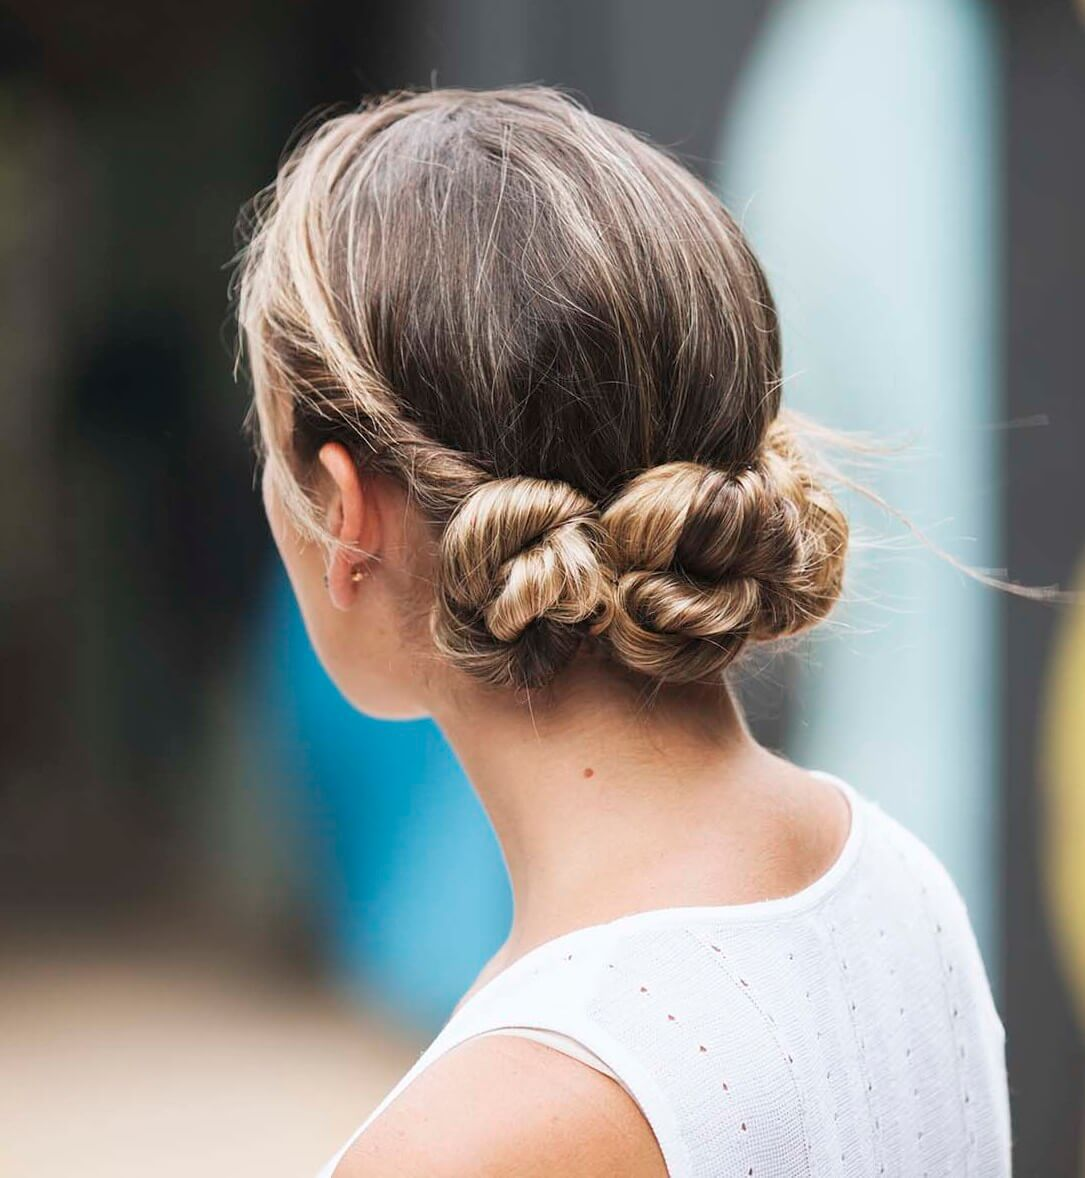 Classic Chignon Wedding Hairstyles: 8 Uber Chic Chignon Hairstyles For Your Wedding Day